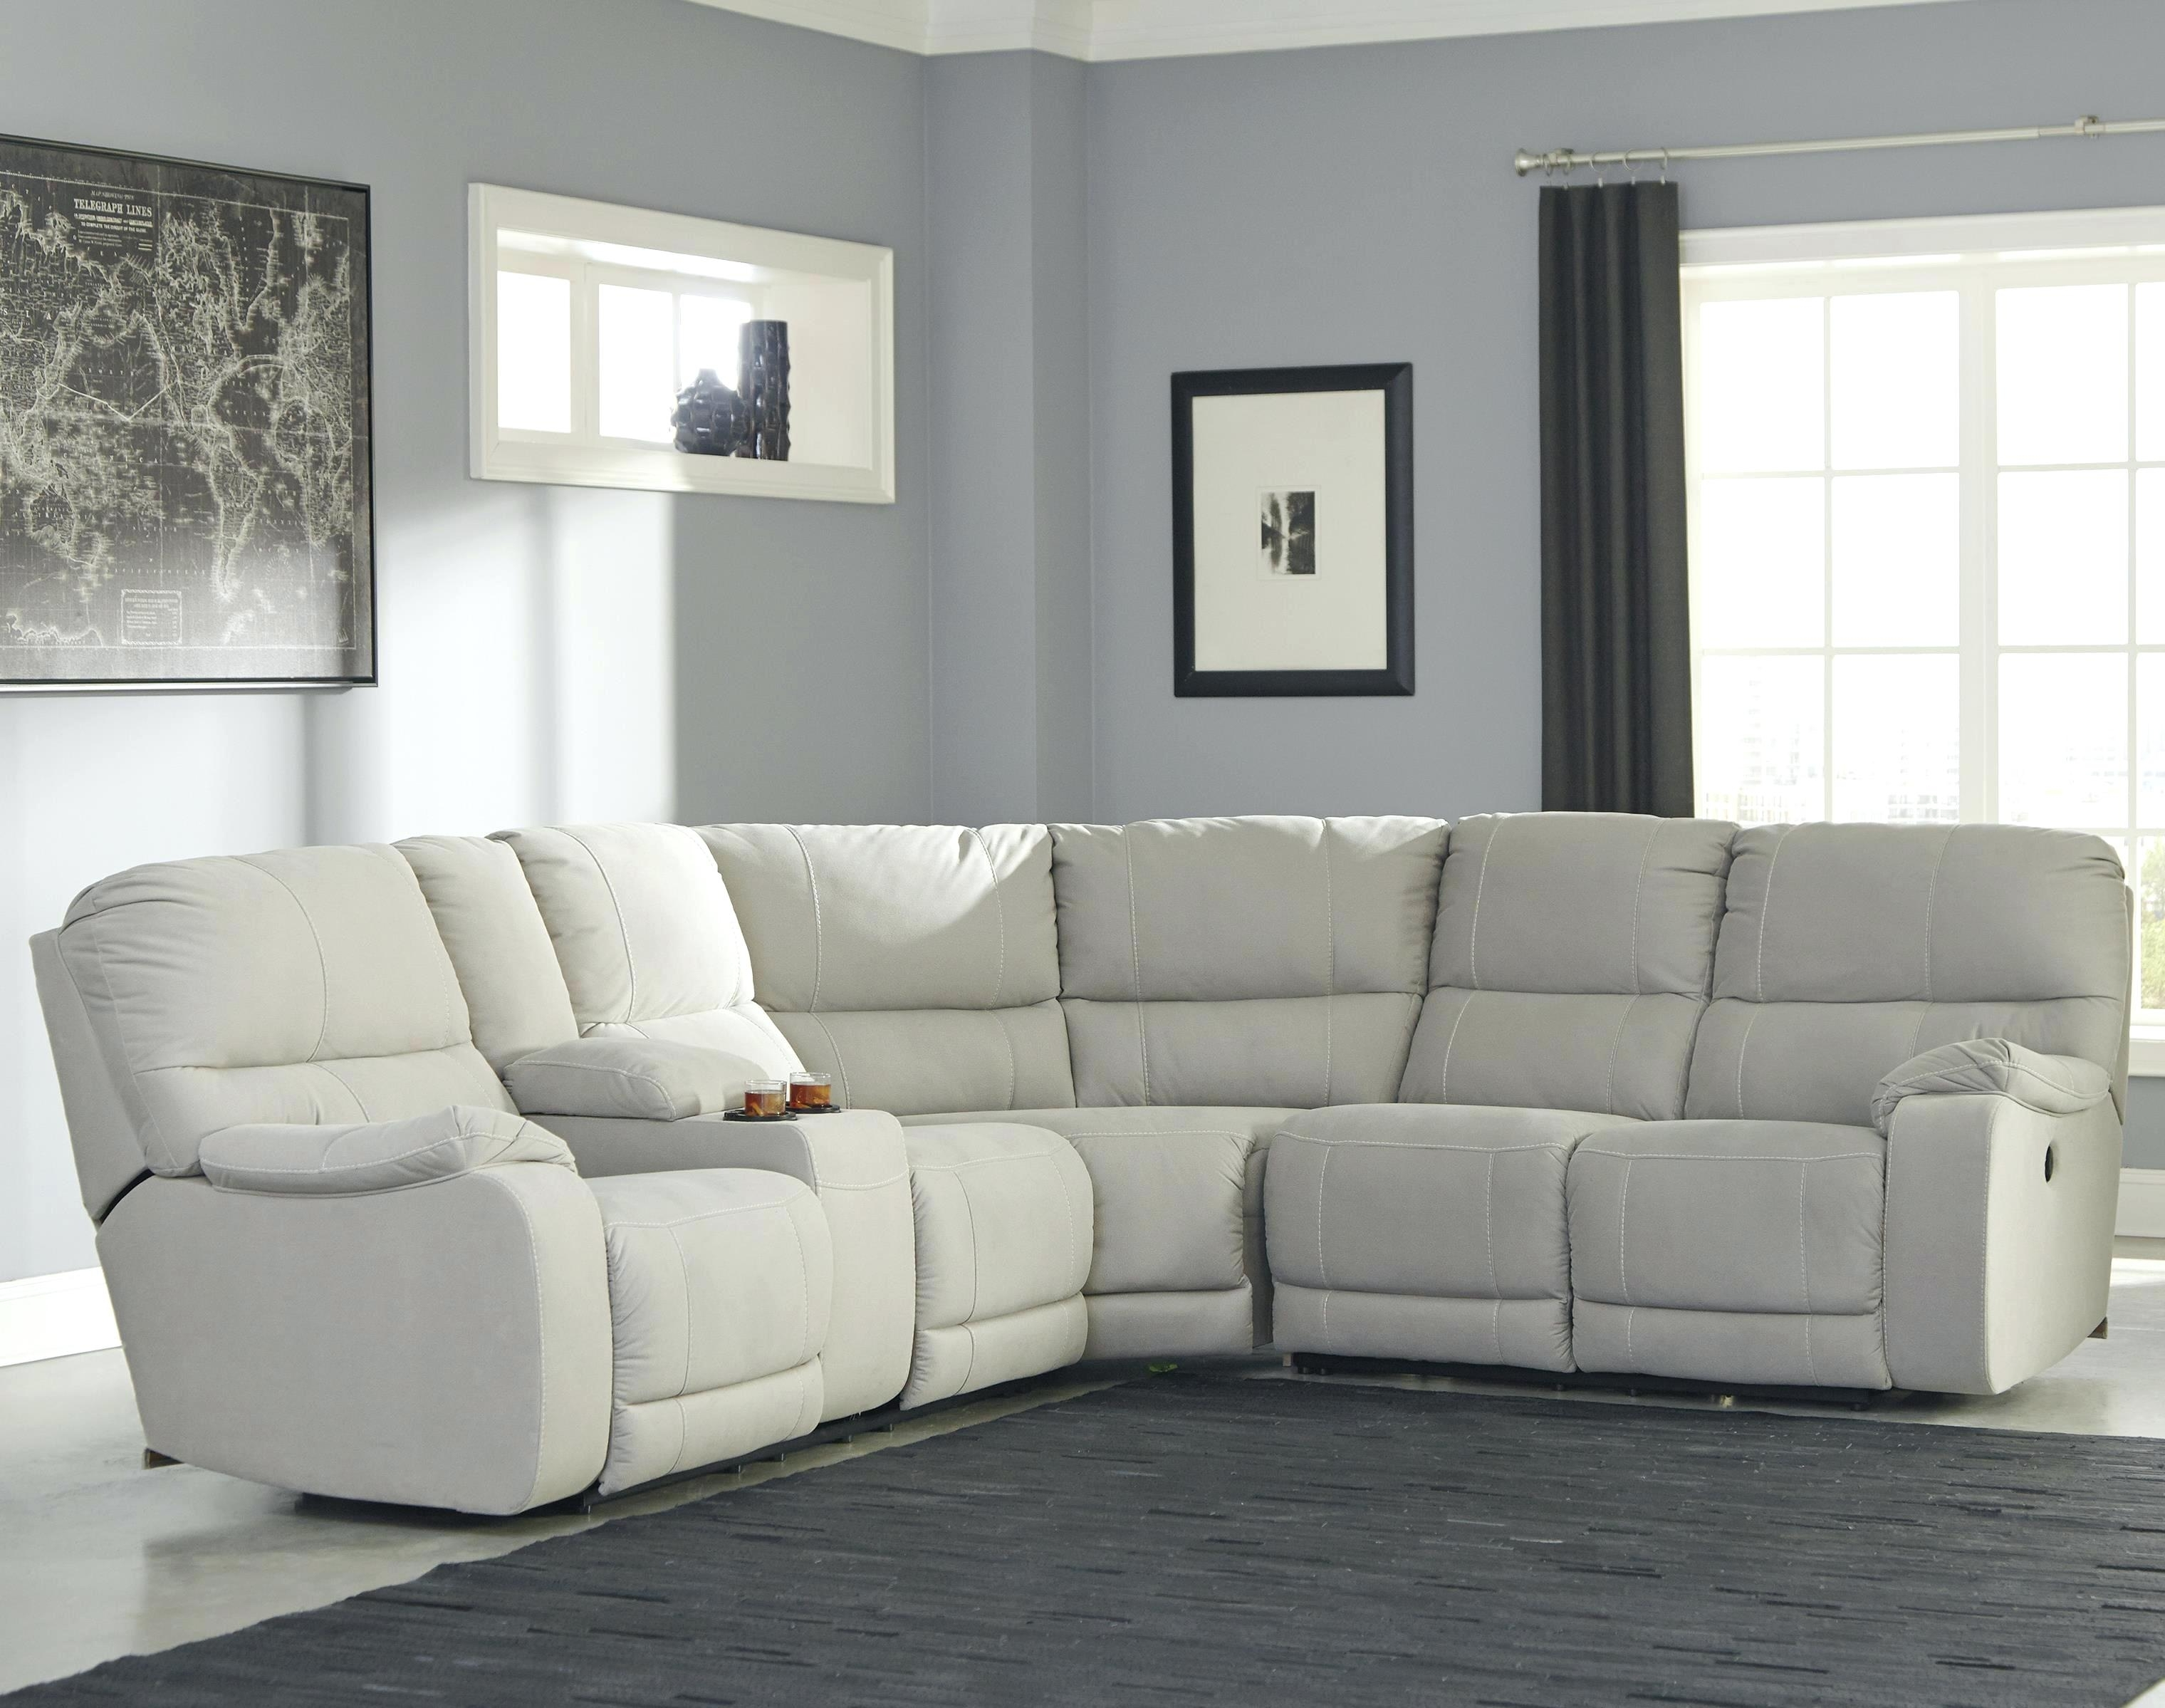 Recent Jedd Fabric Reclining Sectional Sofas Inside Power Reclining Sectional Sofa – Stjames (View 11 of 15)